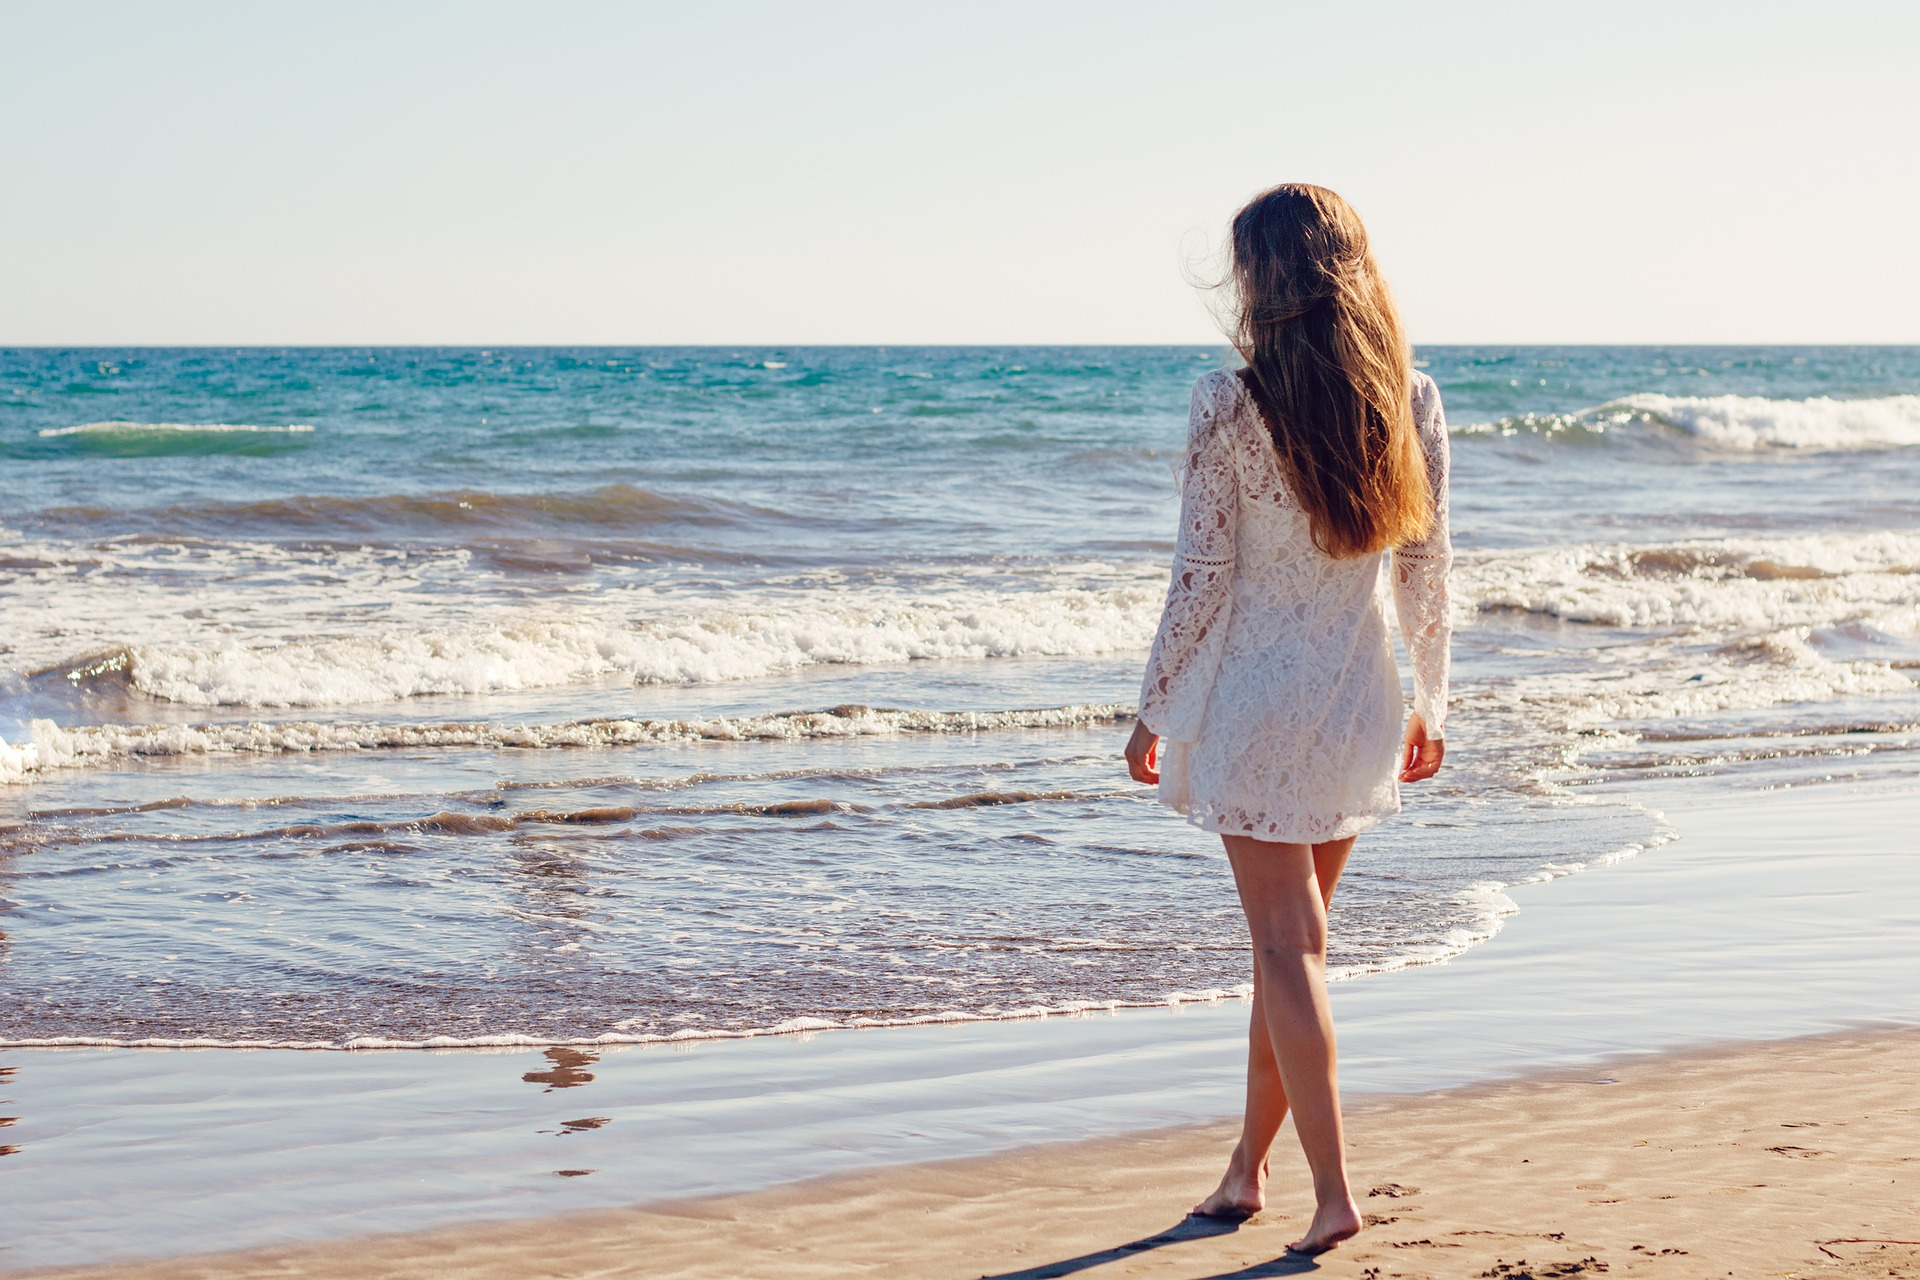 femme-plage-prothese-mammaire